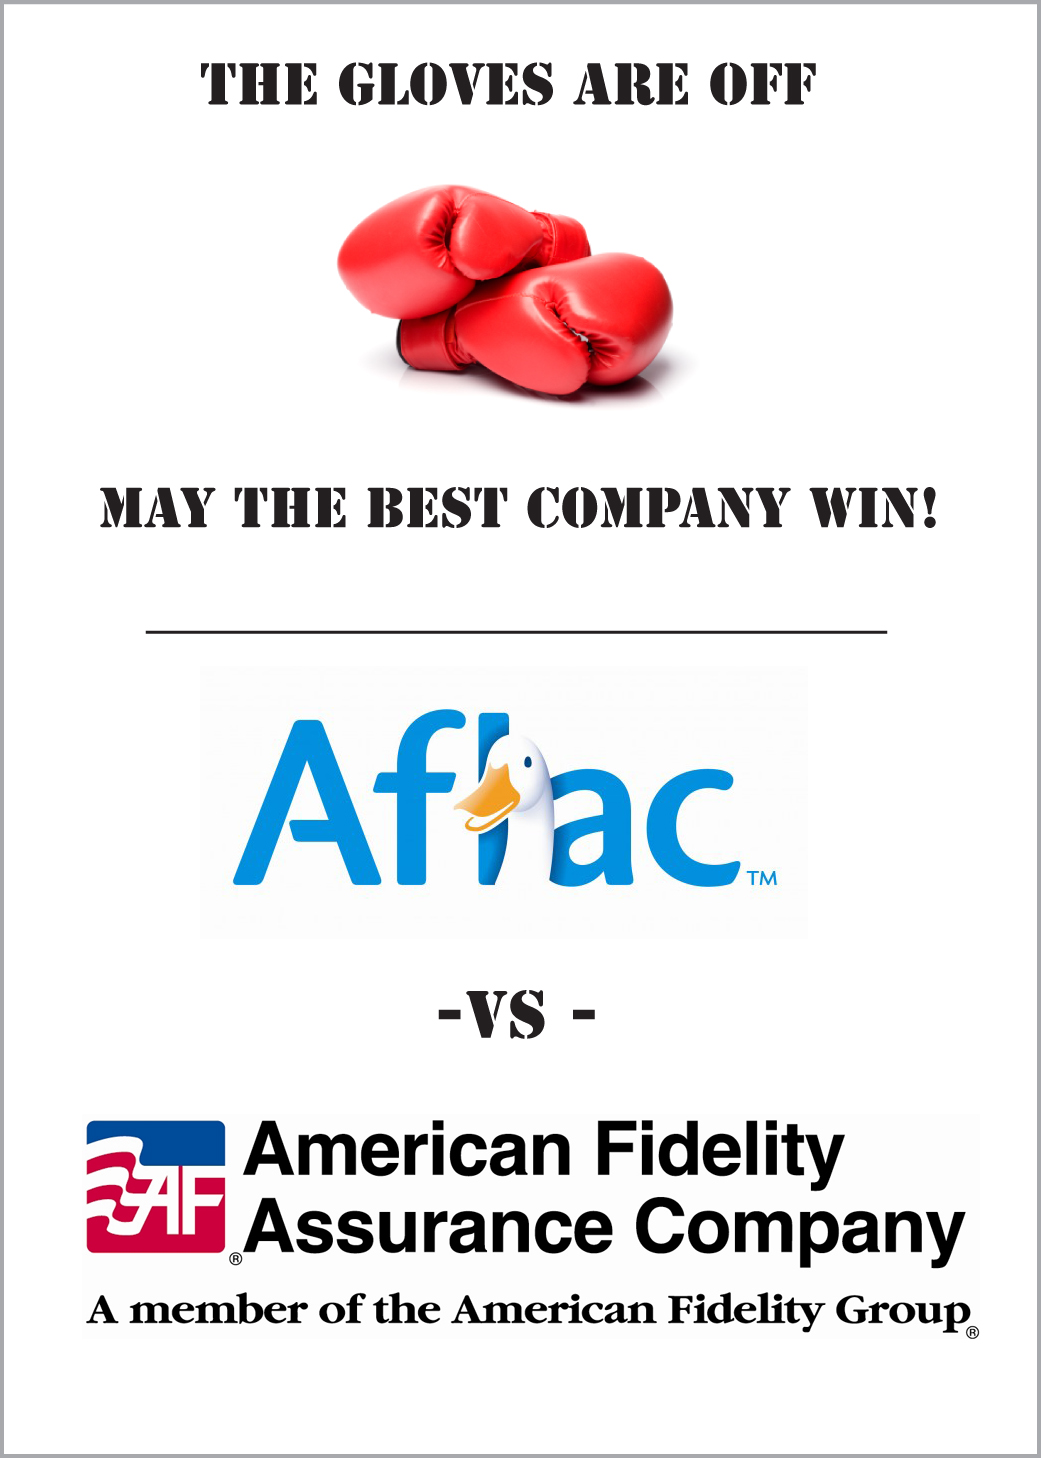 Fidelity Life Insurance Quotes Aflac Vs American Fidelity Assurance Company